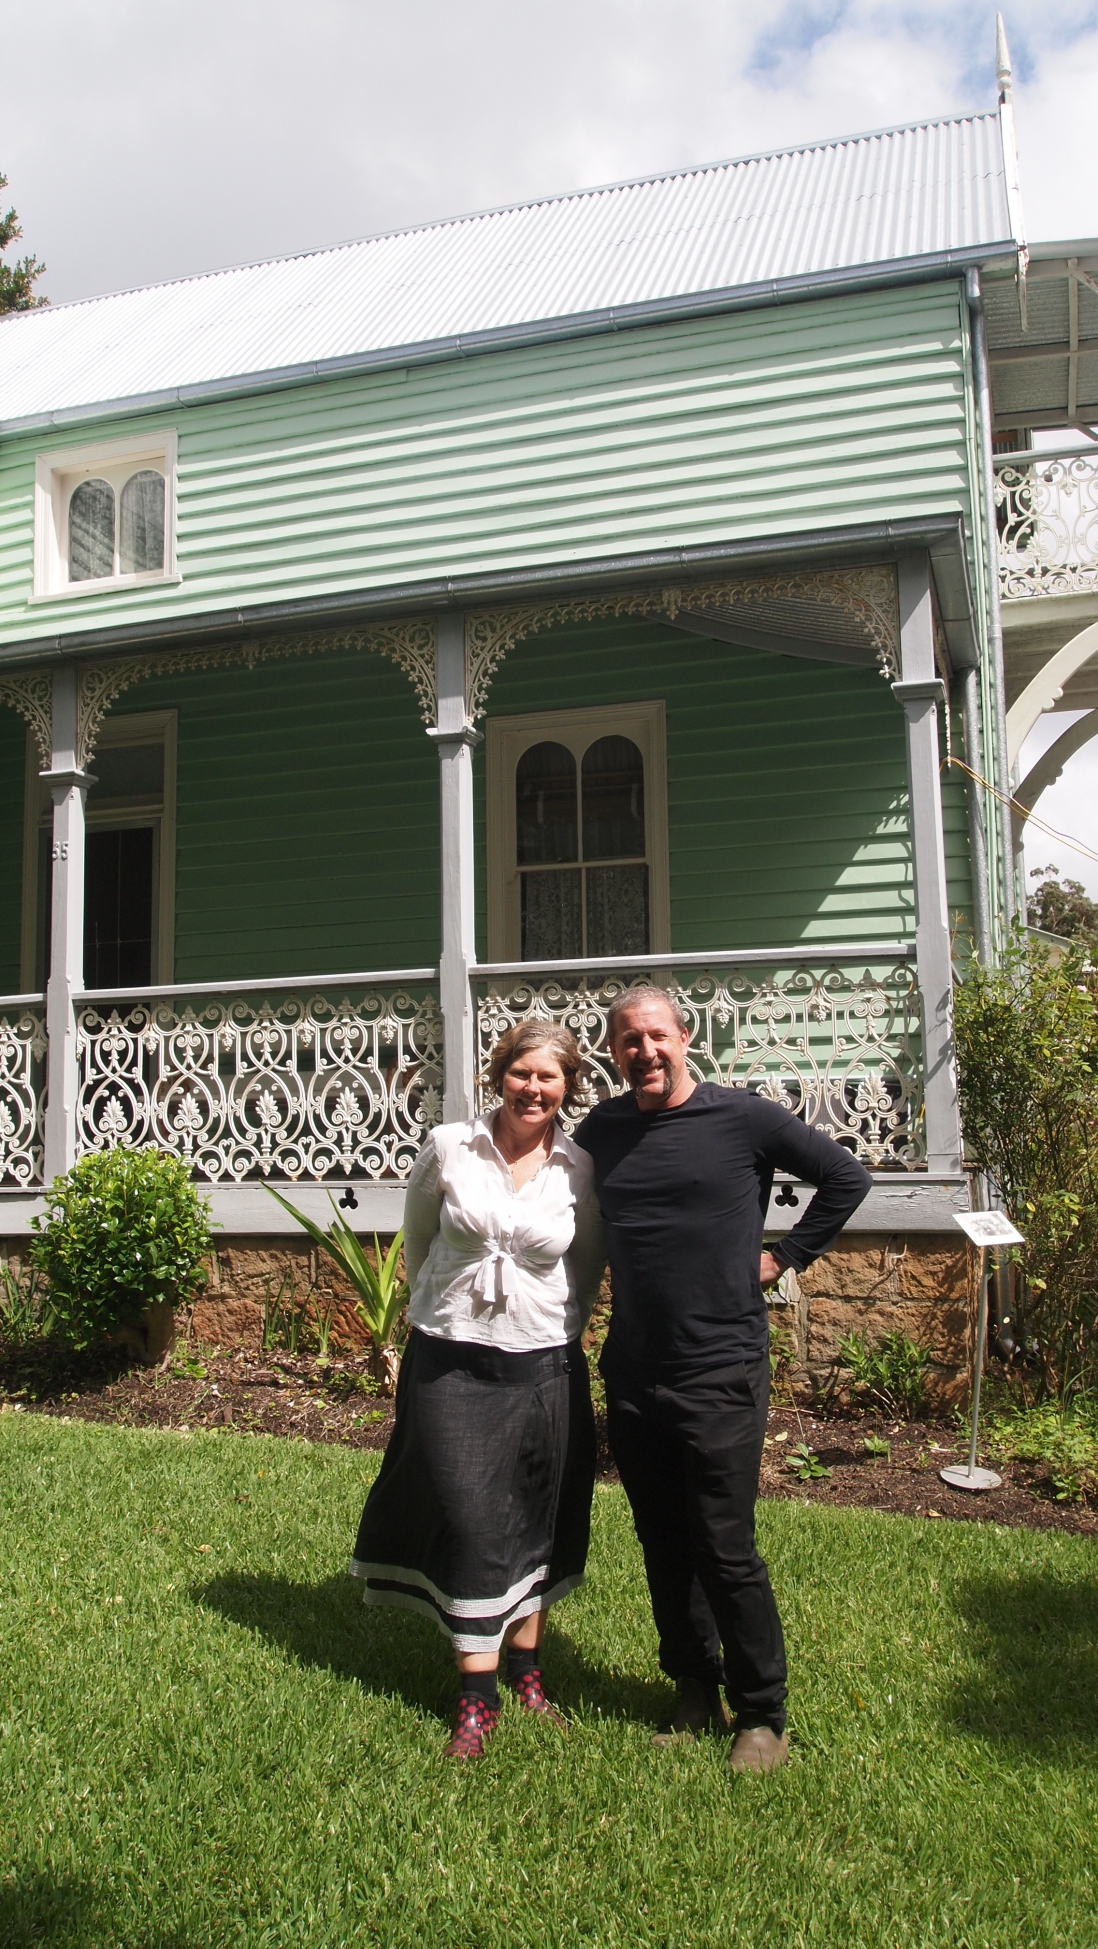 Two people standing outside historic house, Meroogal.